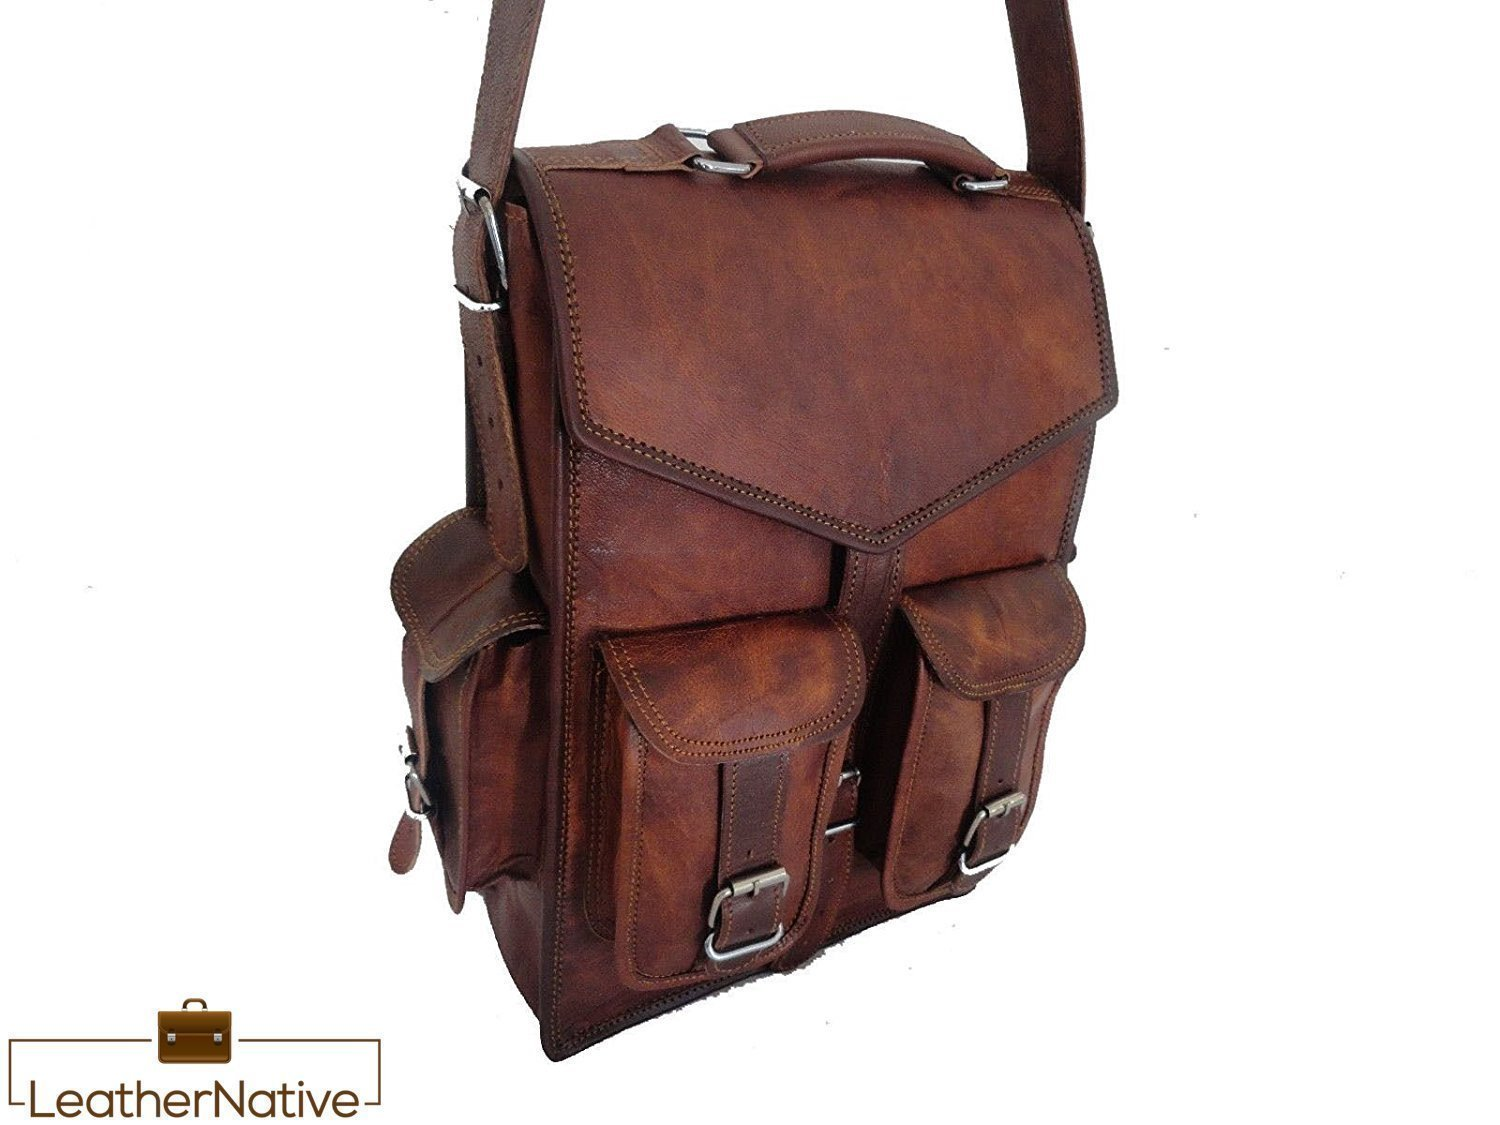 Leather Messenger Bag Briefcase Satchel - 2-in-1 Rucksack and Courier Bag, Fits Crossbody or On Your Back - 15-inch Handmade, Takes a Small Laptop, iPad - Rich Patina Improves with Age - Men or Women